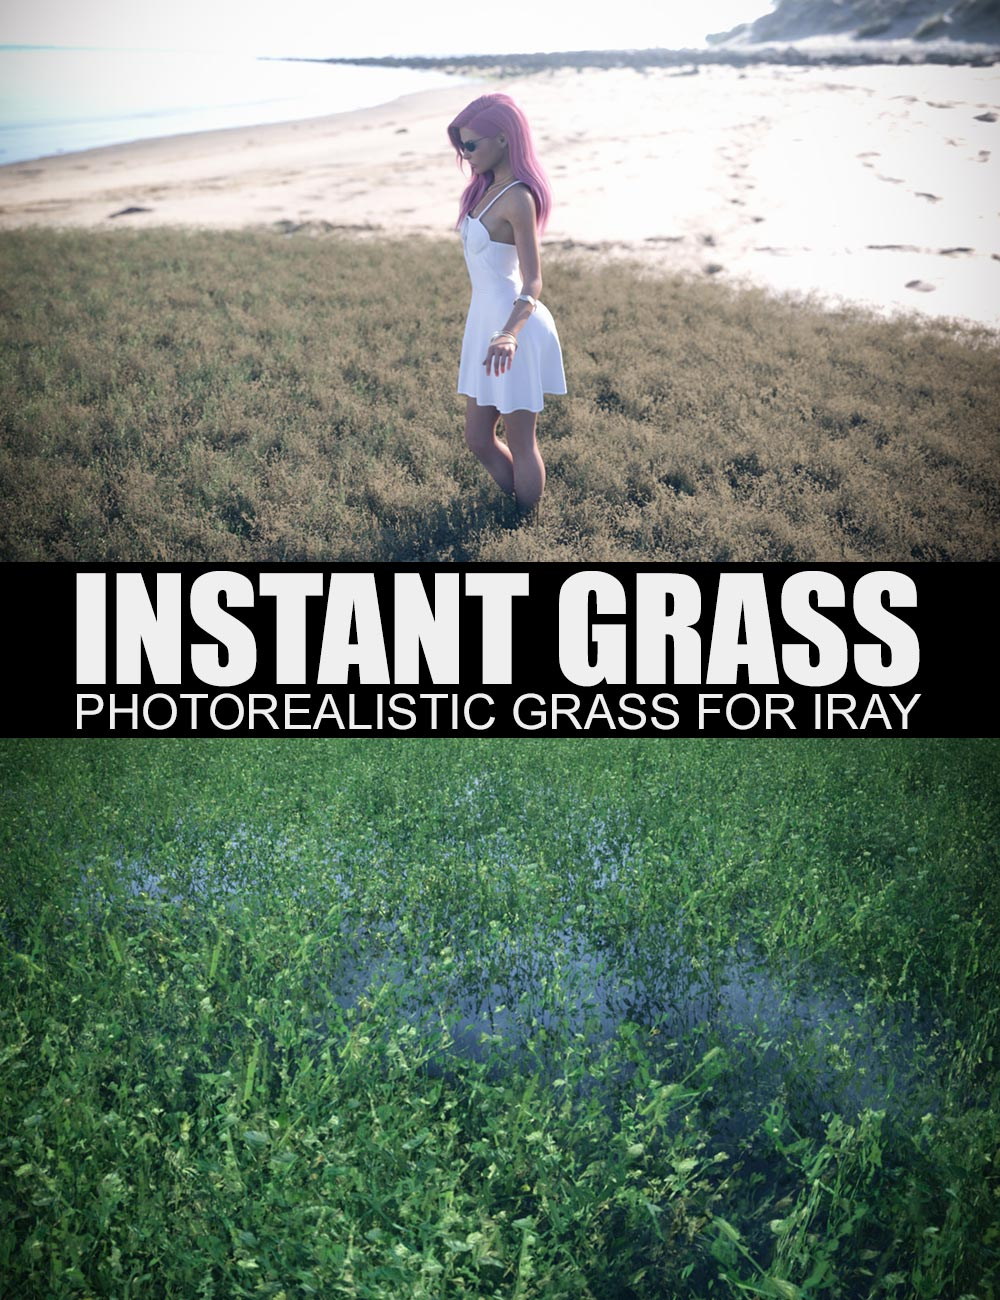 Instant Grass - Photorealistic Grass For Iray by: Dreamlight, 3D Models by Daz 3D